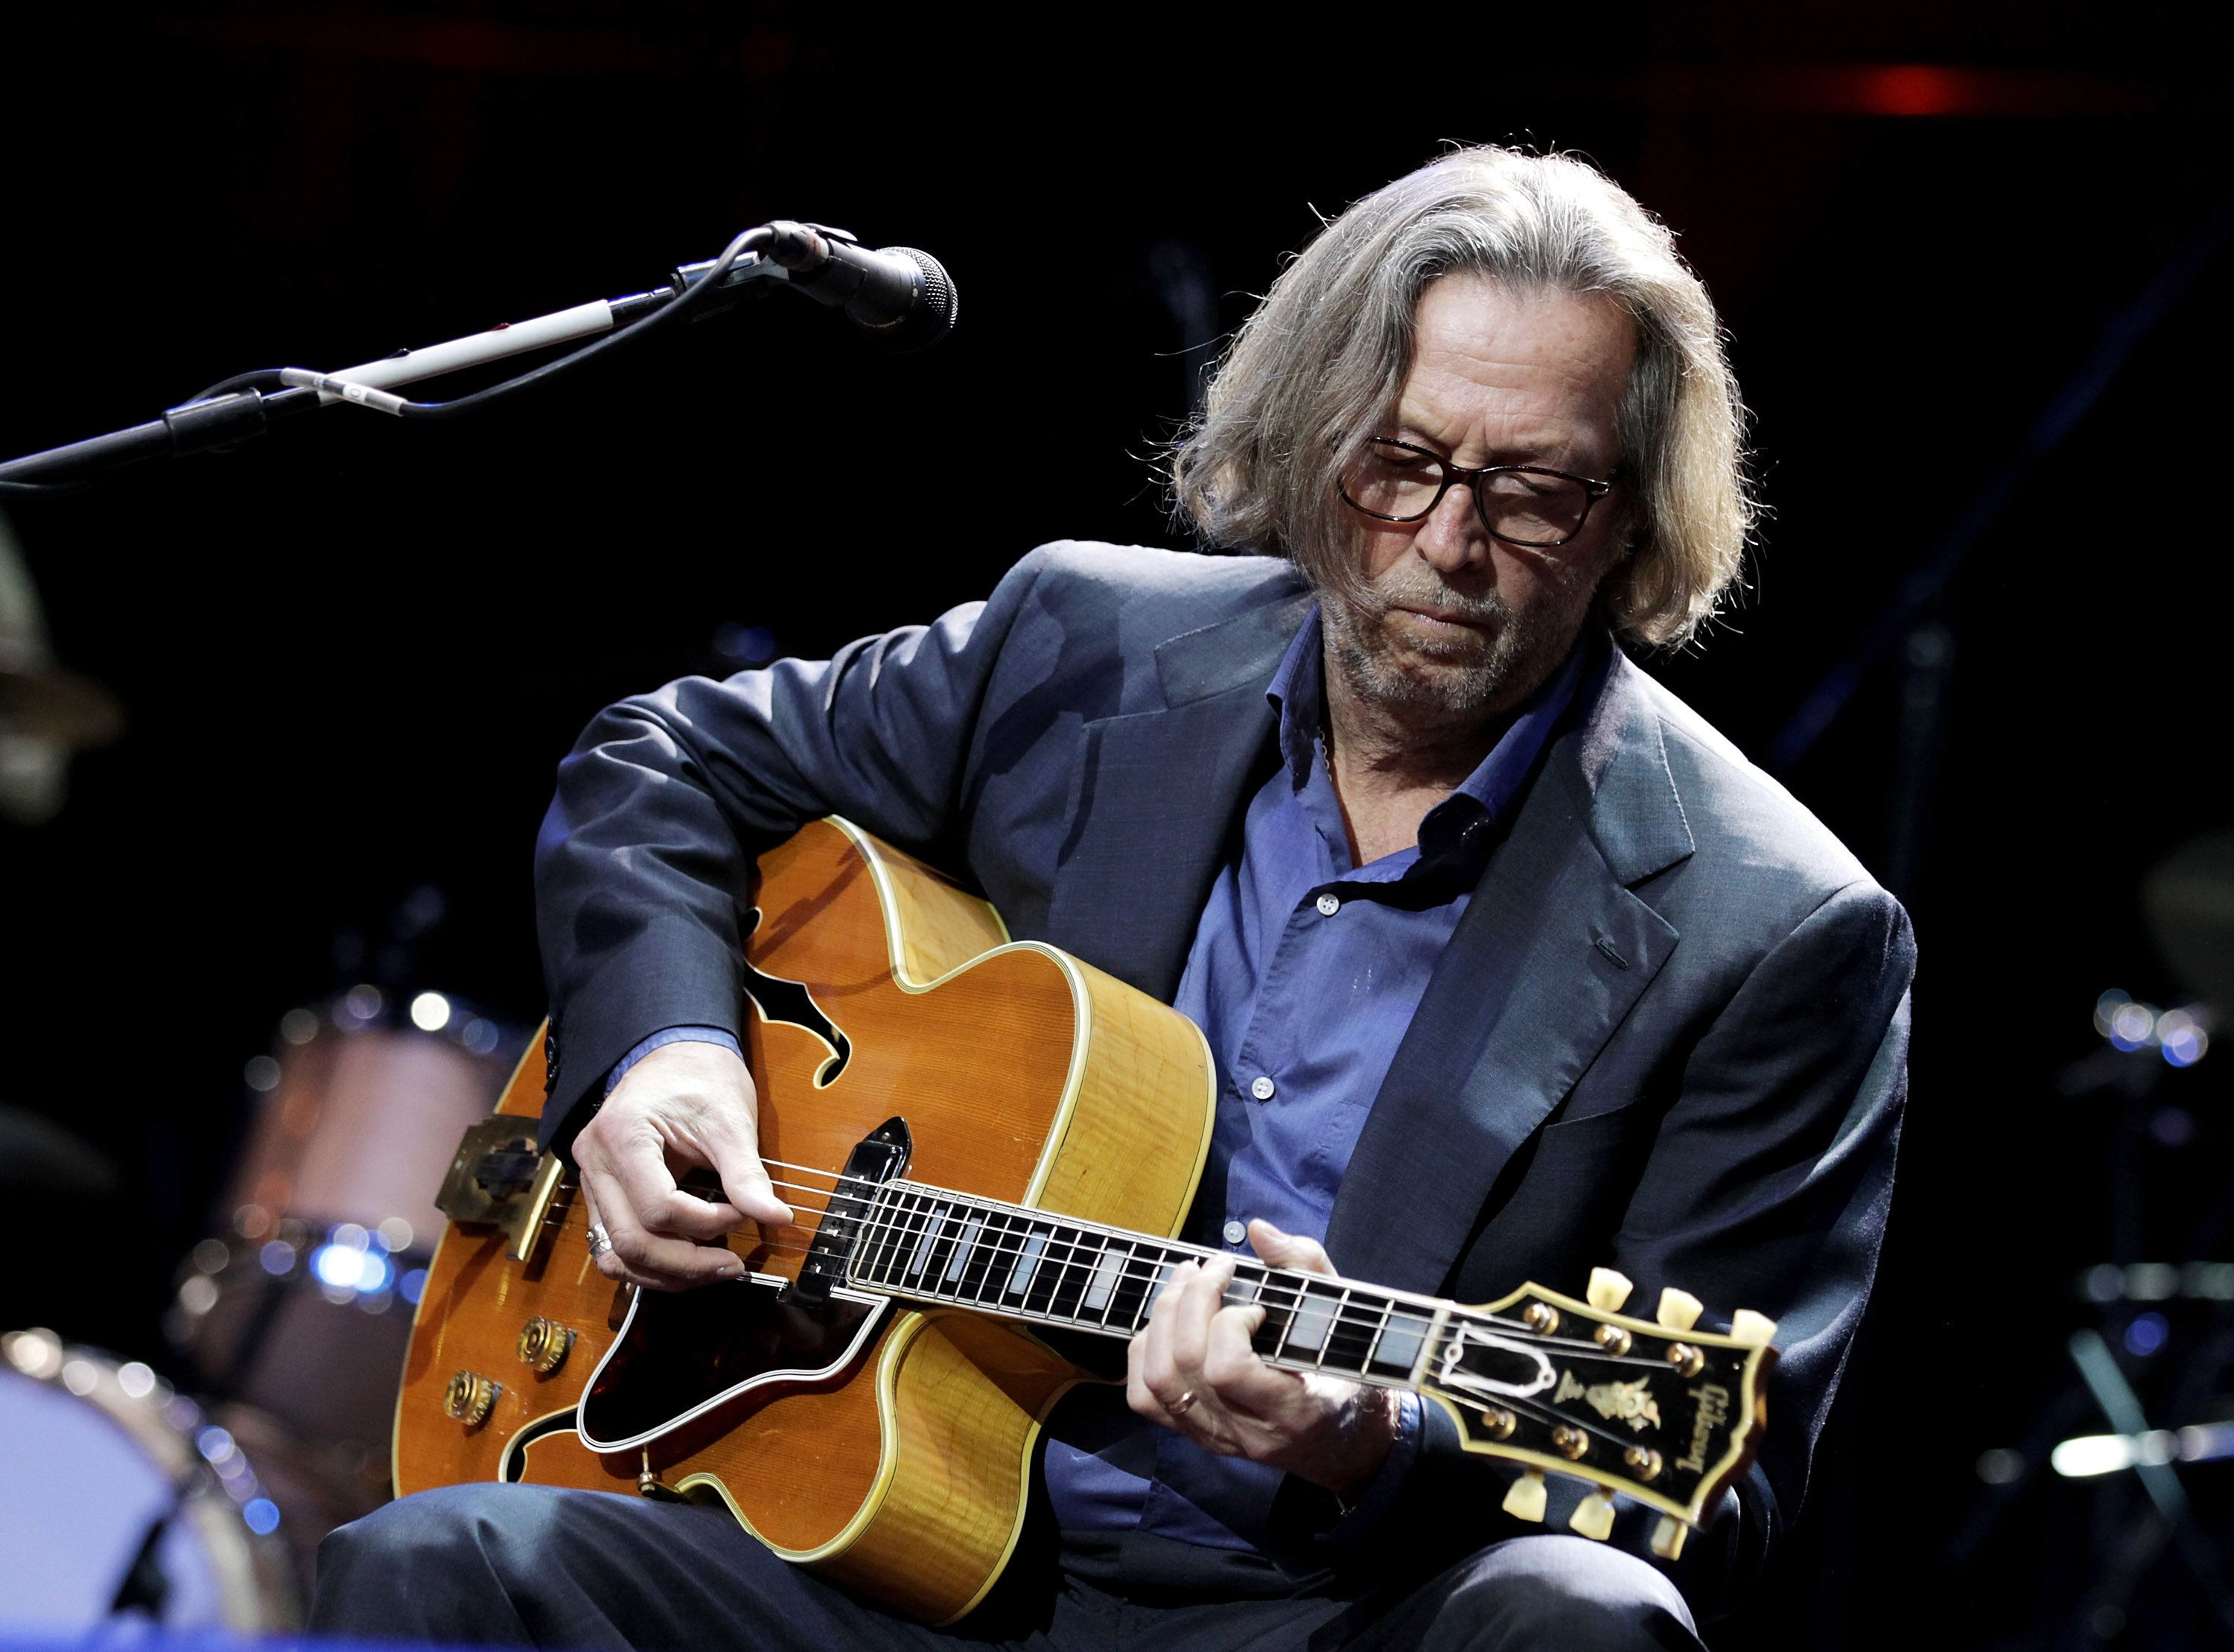 Eric Clapton performs at the Royal Albert Hall in Londonin 2010.